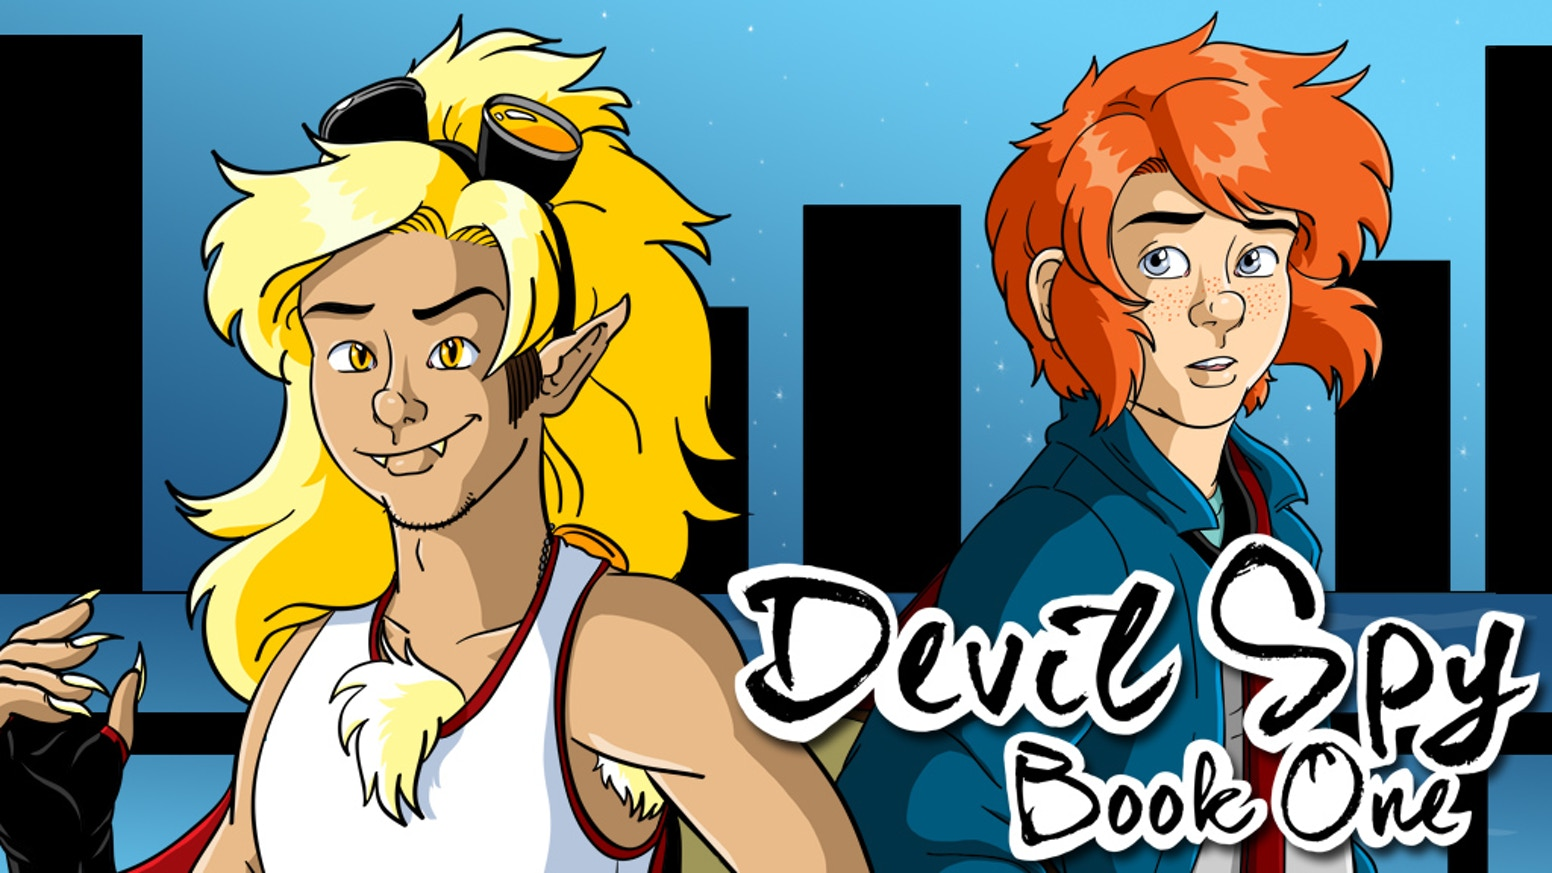 Devil Spy is a webcomic about a teenage human animal hybrid in a world where humans were wiped out by war.